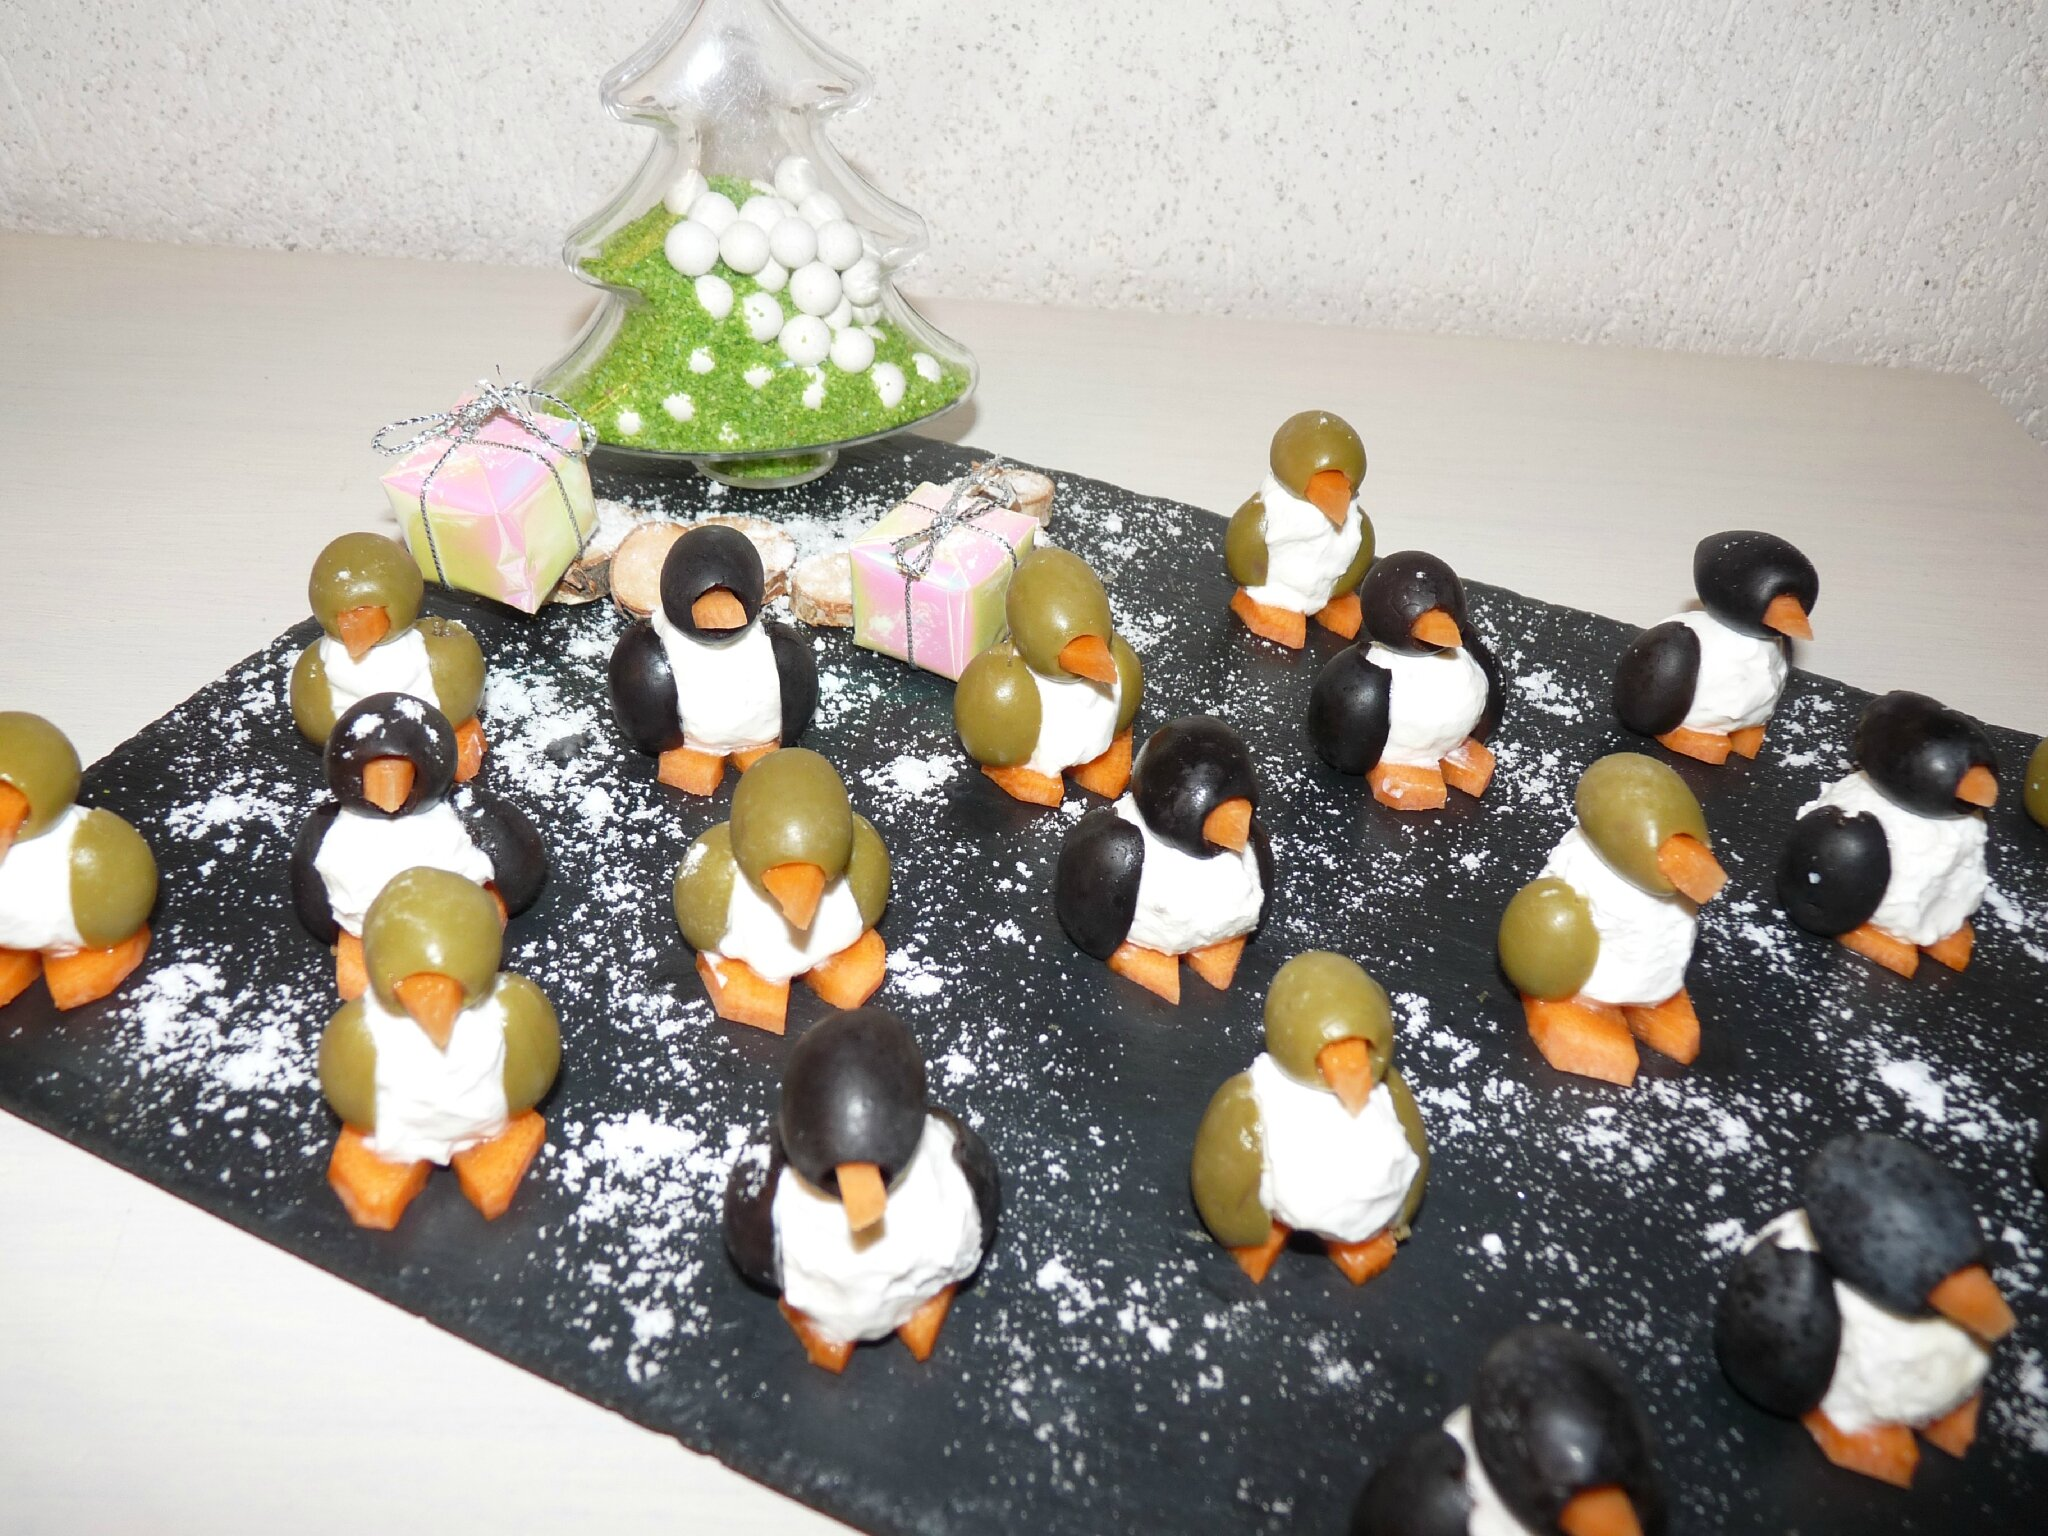 Pingouin comme amuses bouches